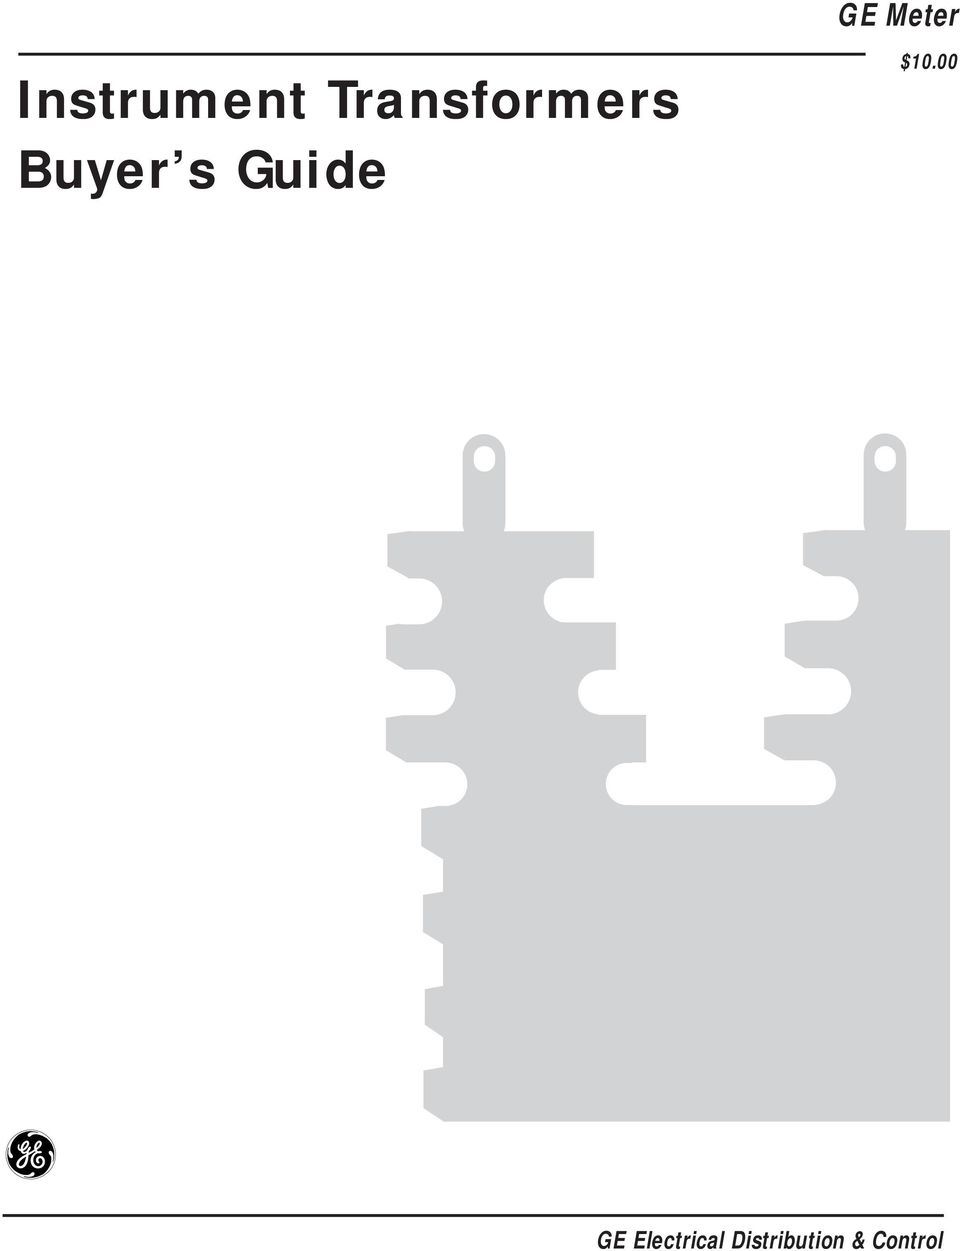 Instrument Transformers Buyer s Guide - PDF on